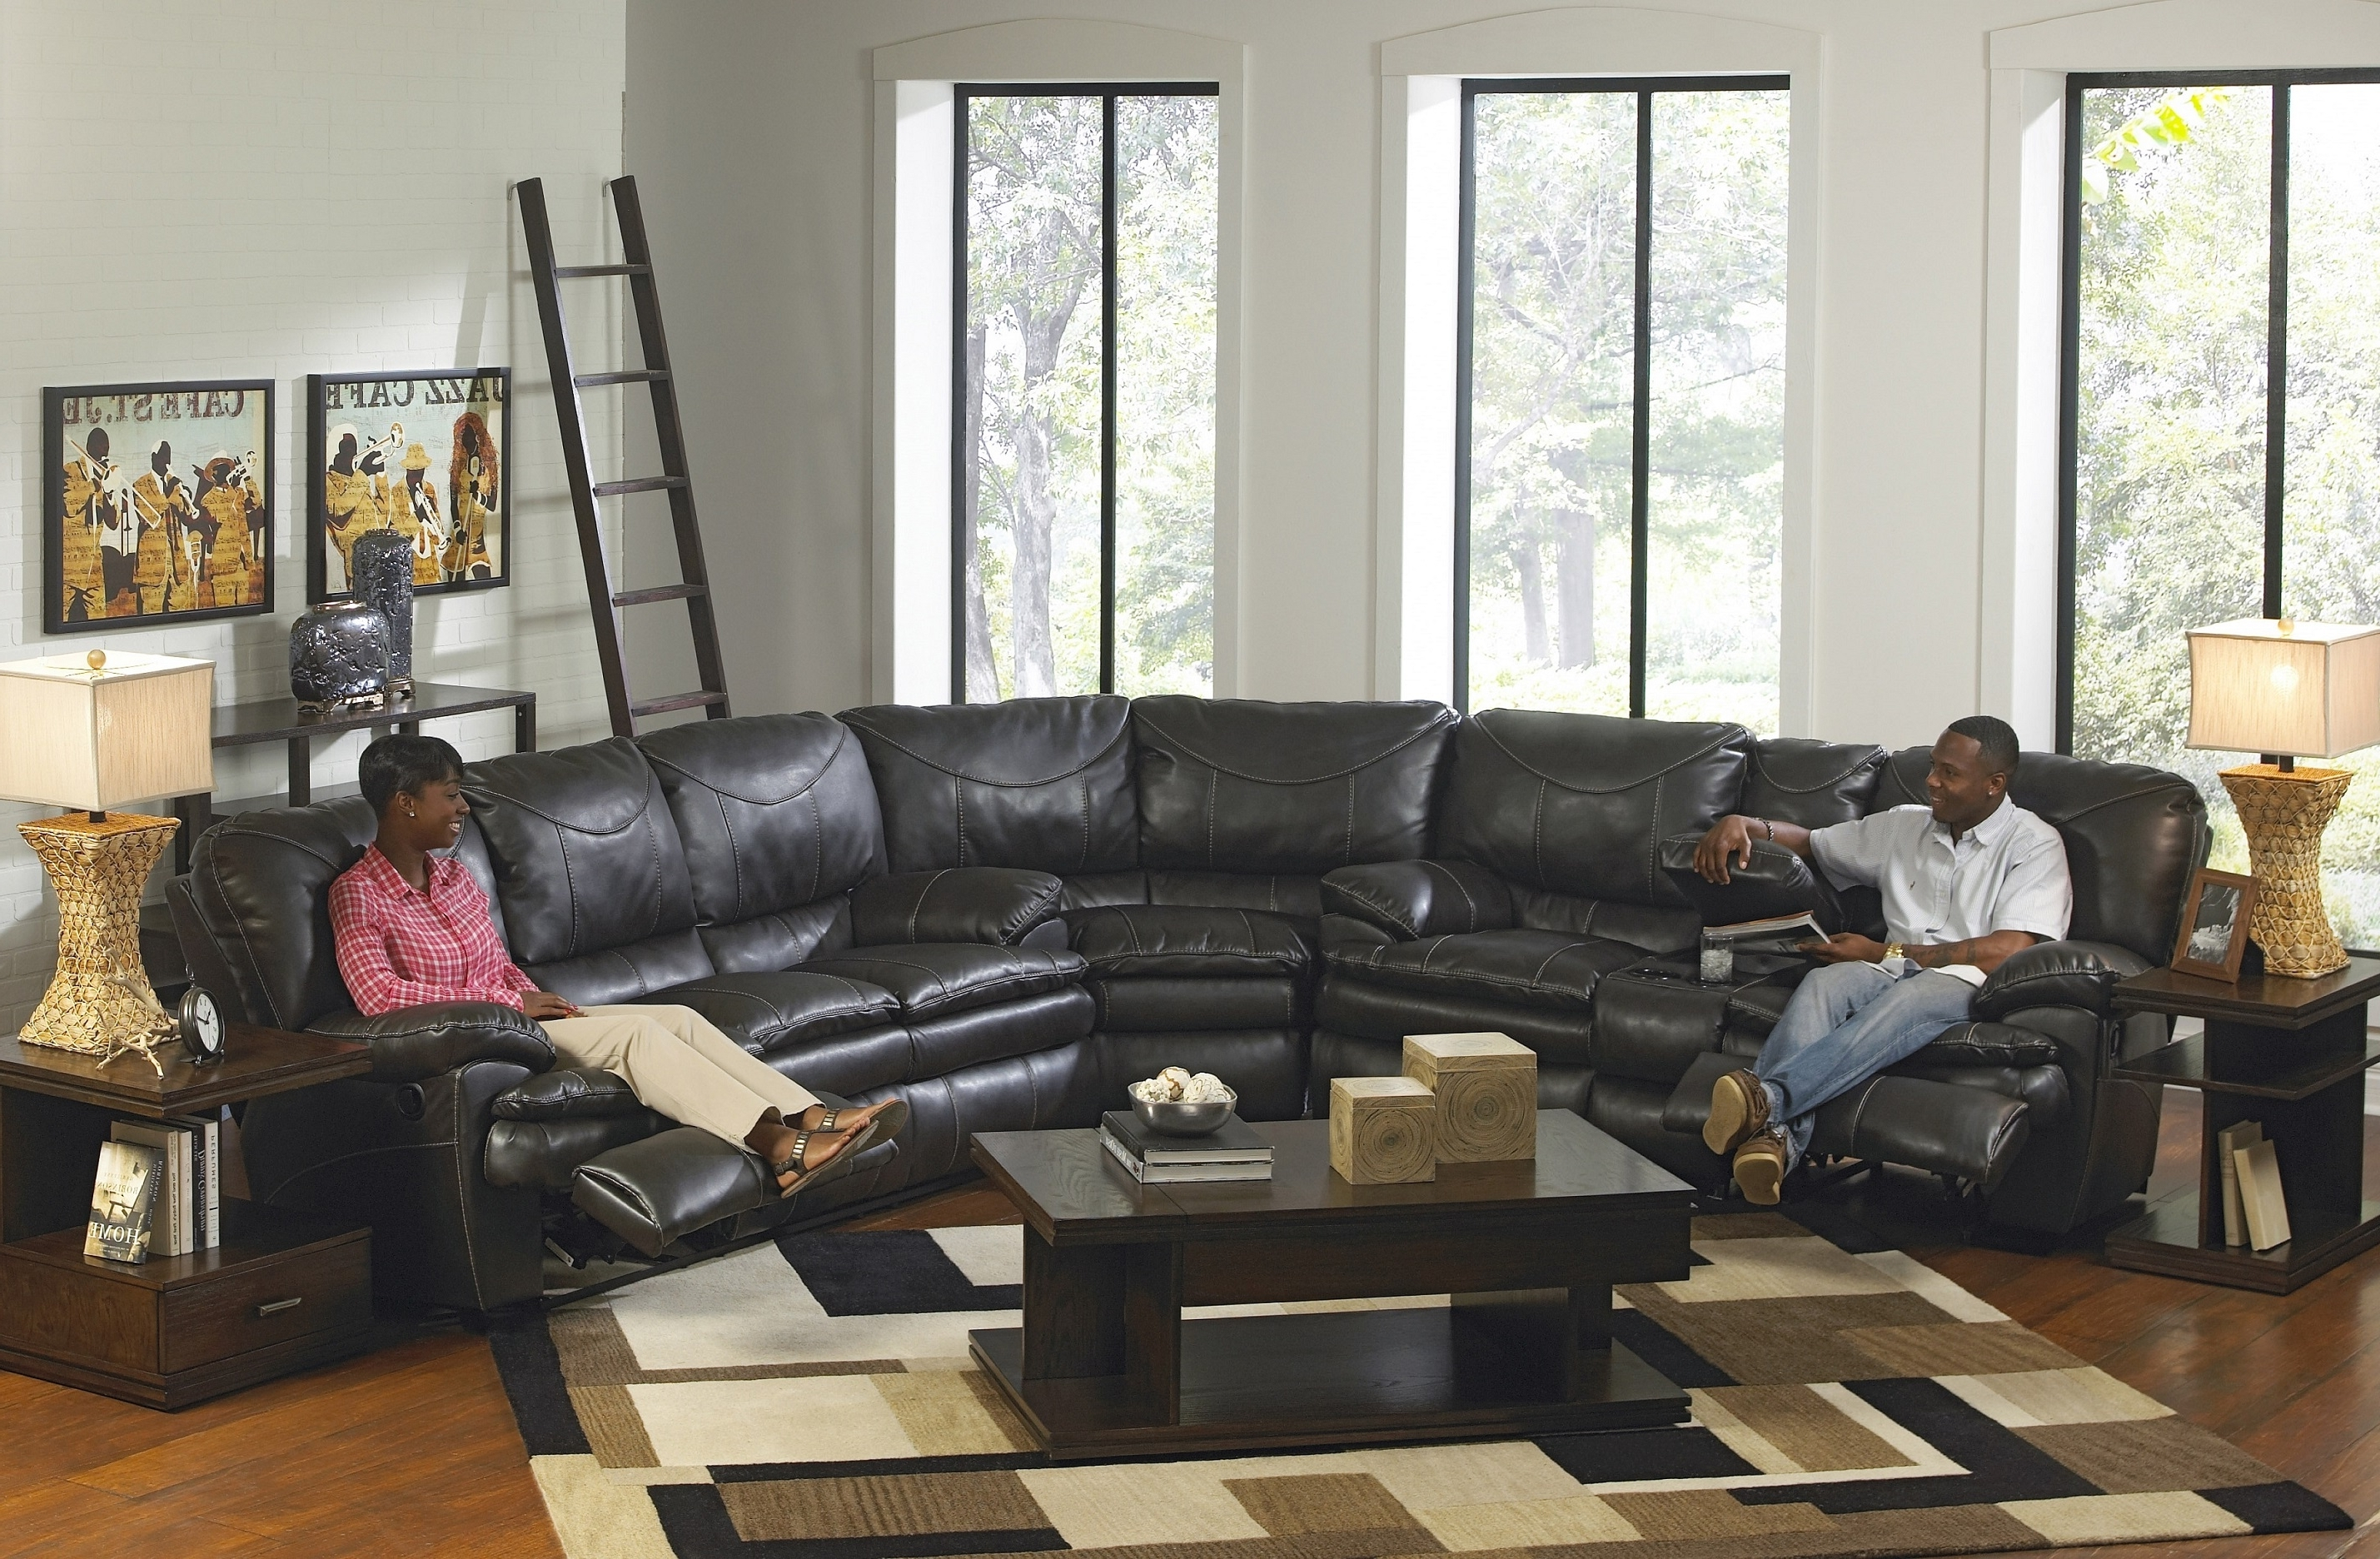 6 Piece Leather Sectional Sofas Inside Recent Big Softie 6 Pc. Power Reclining Sectionalone80 White Leather (Gallery 13 of 20)